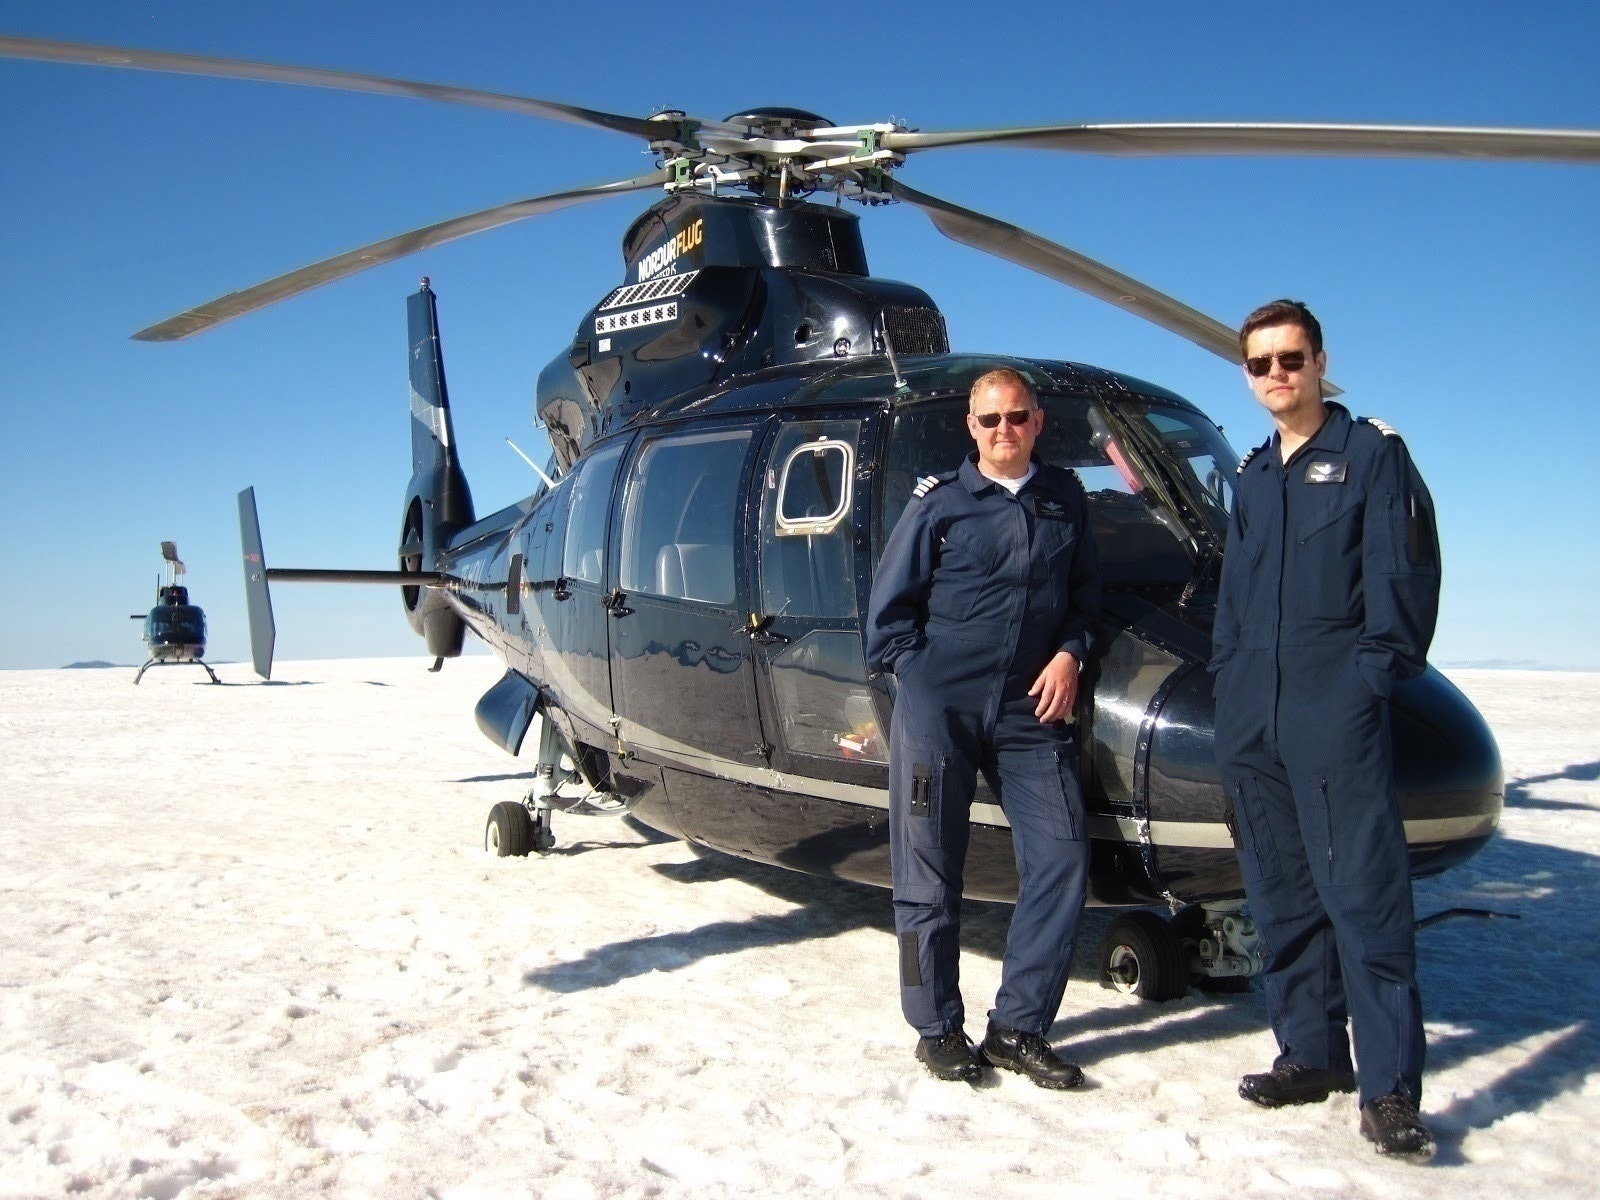 Helicopter tours over Reykjavik and Iceland